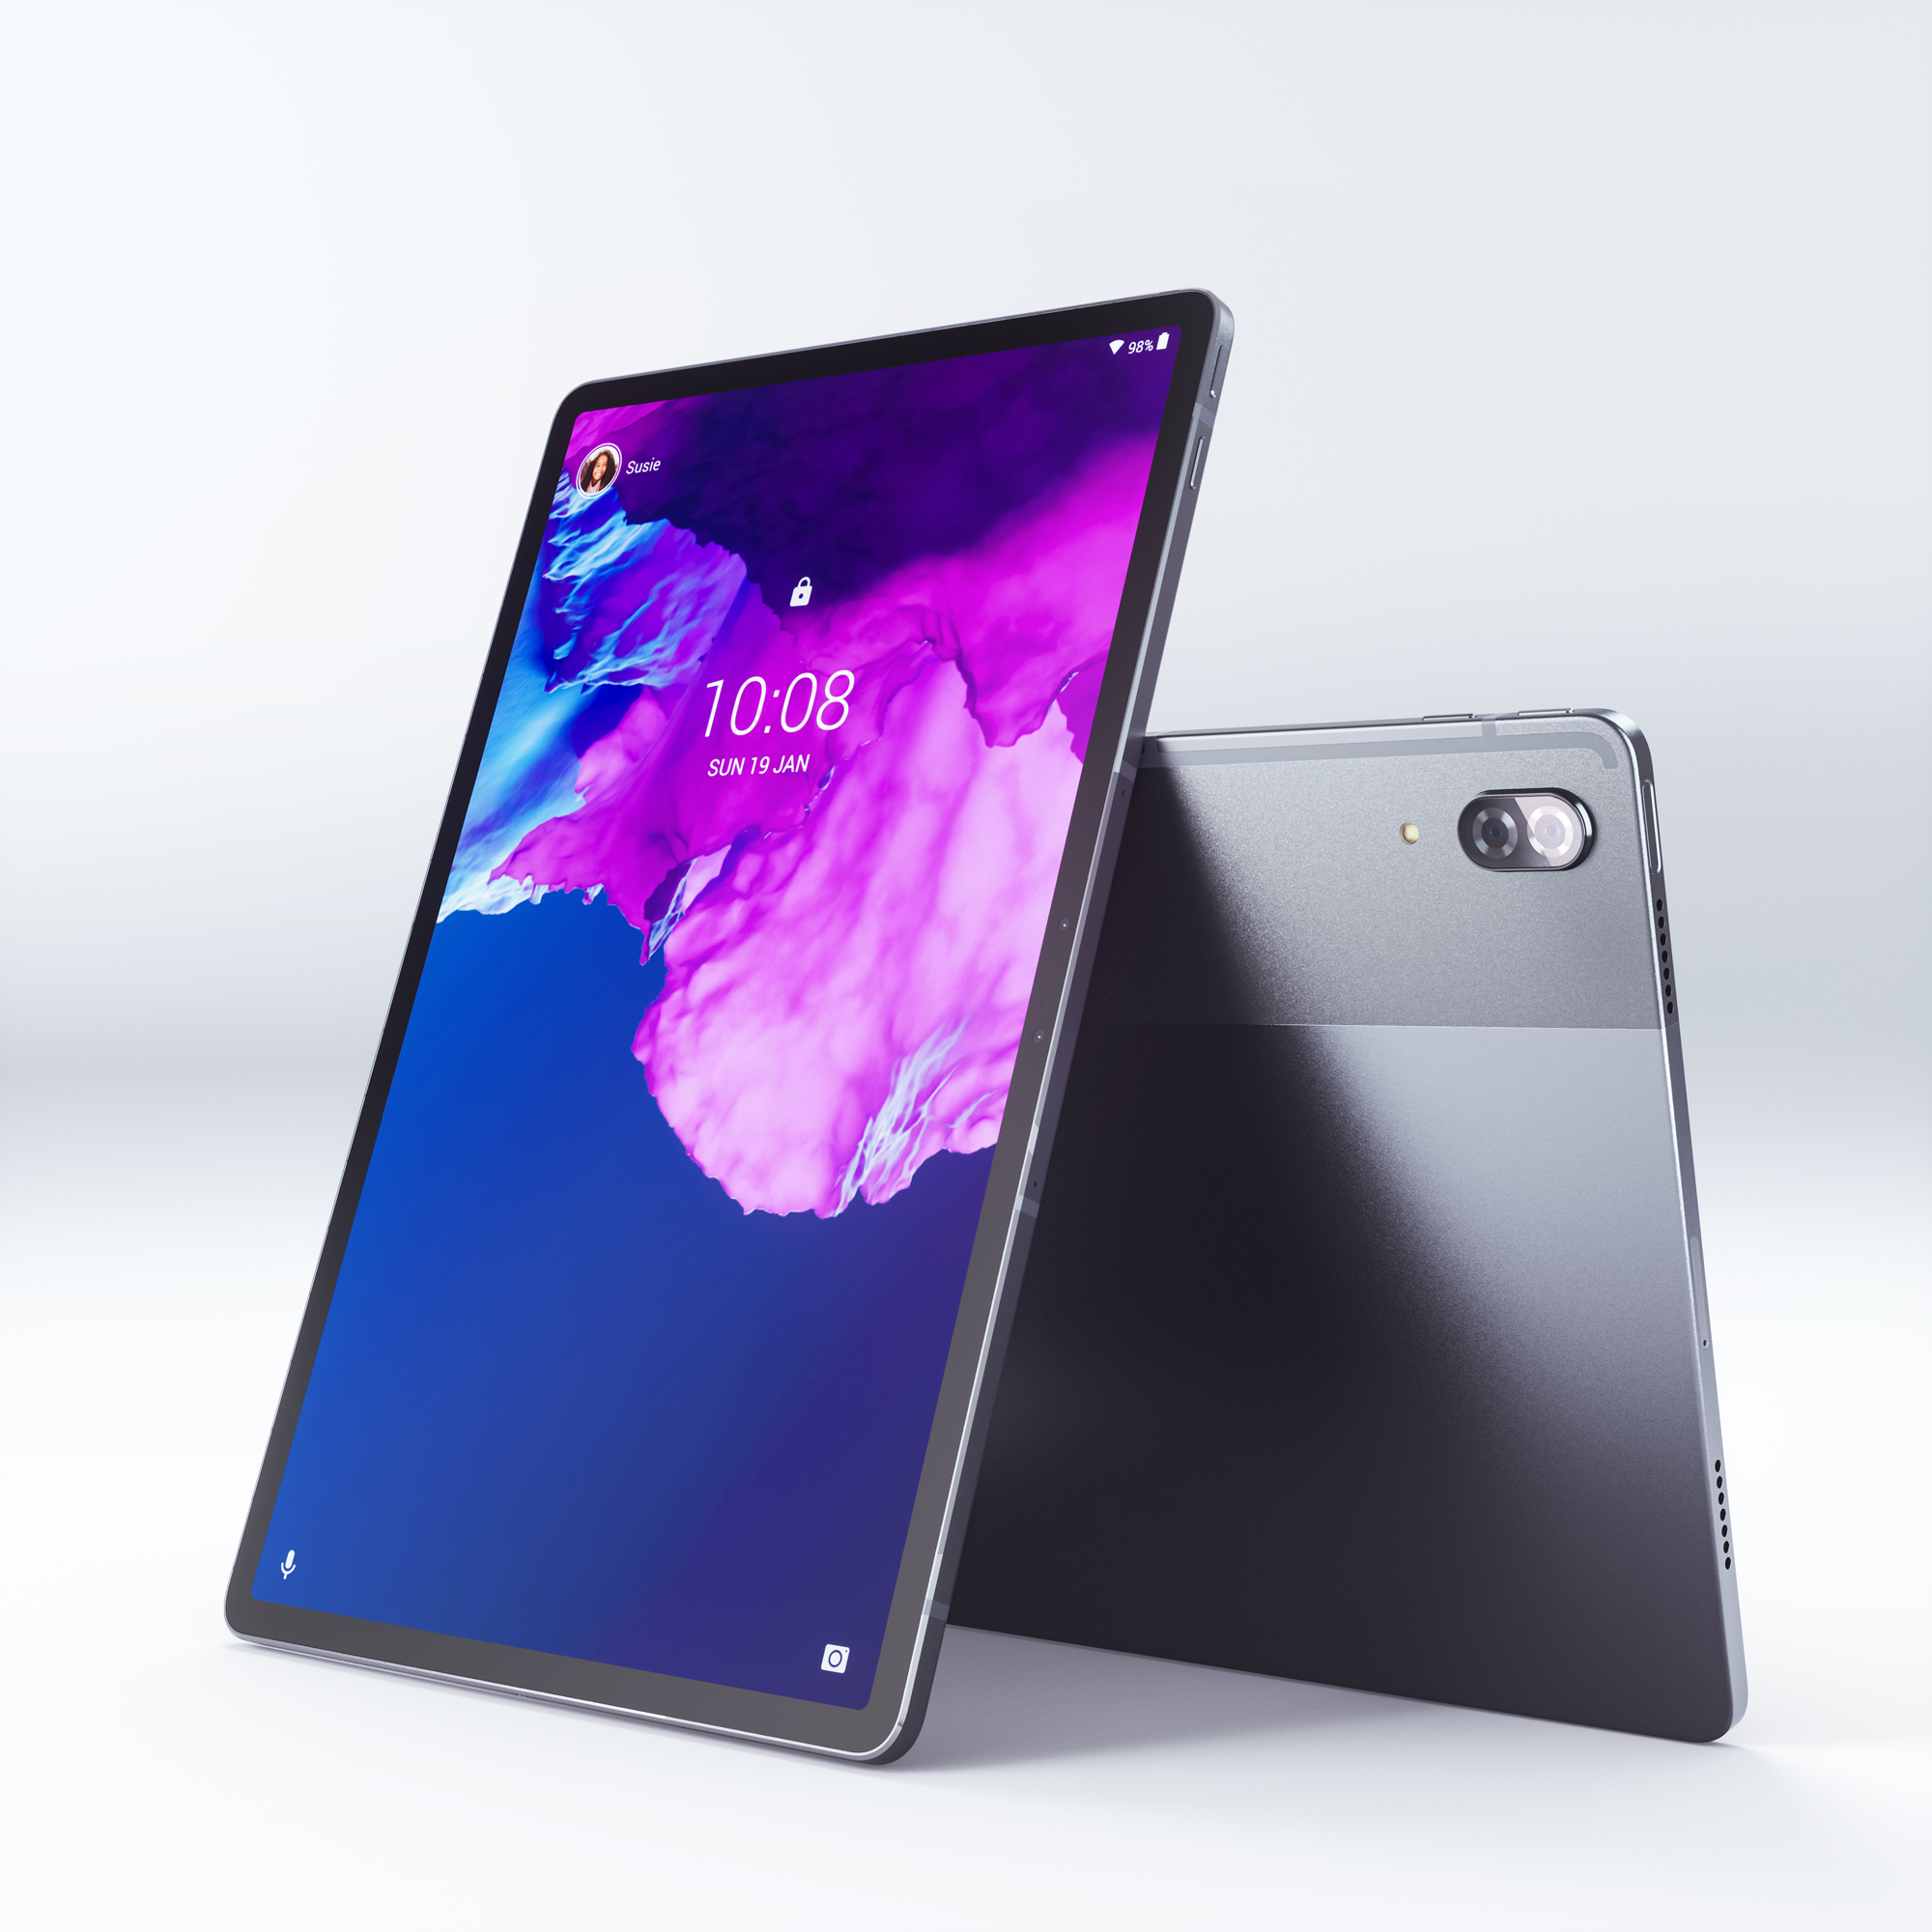 lenovo-tab-m10-hd-gen-2-tab-p11-pro-official-price-specs-release-date-availability-philippines